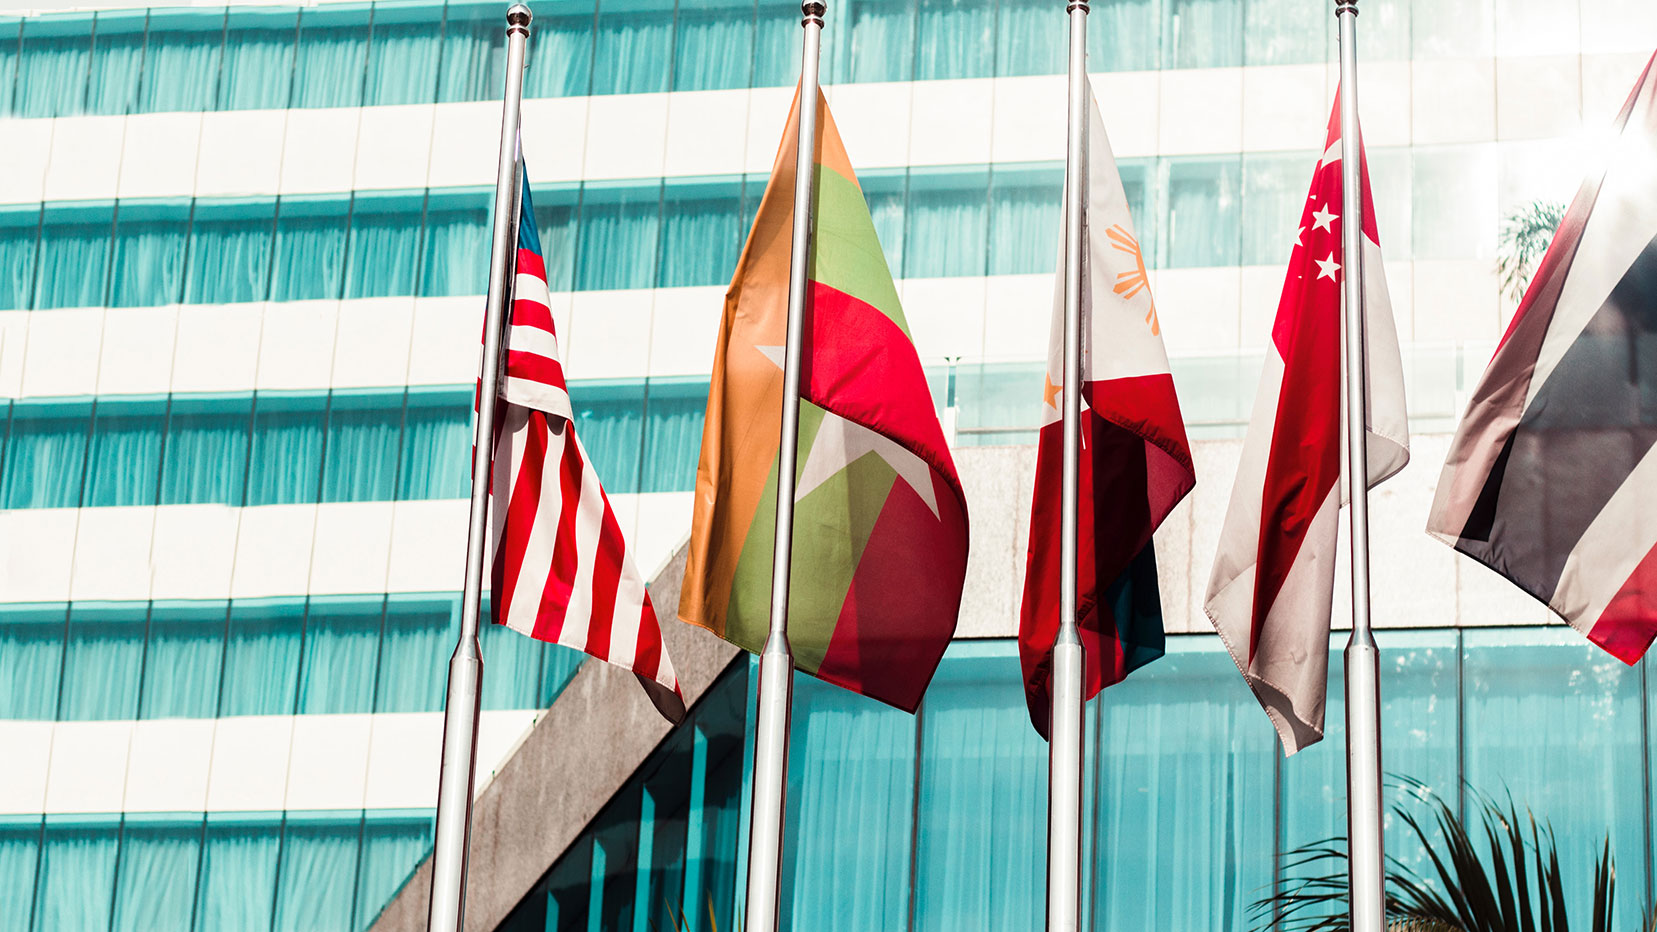 Flags in front of building